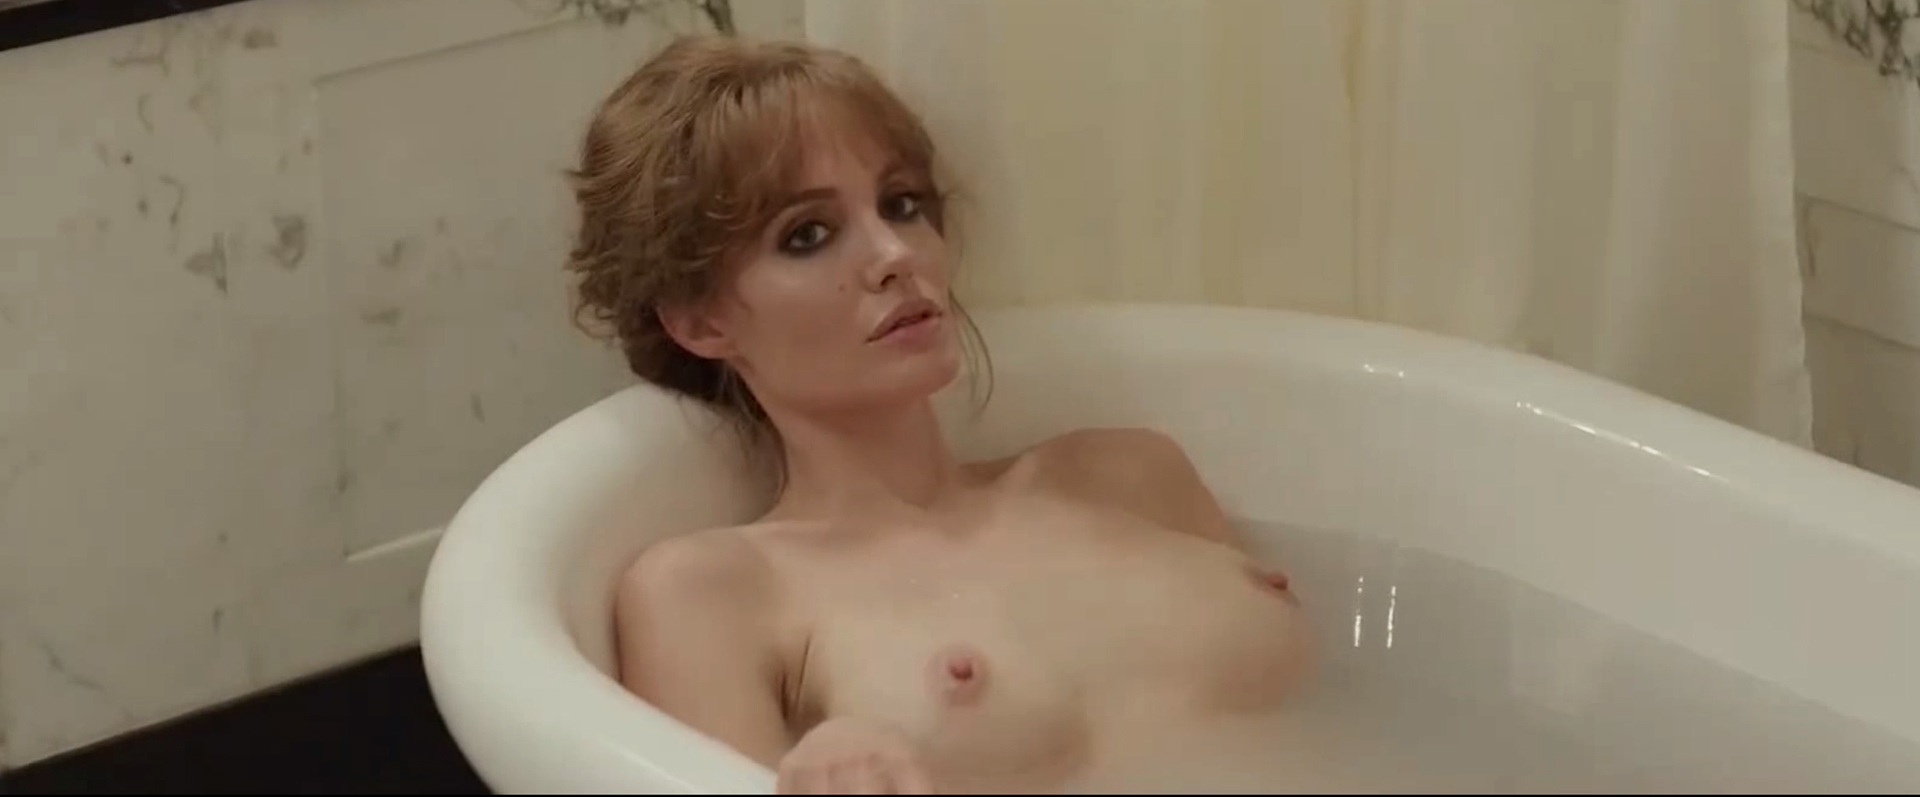 Angelina Jolie Nude Pictures angelina jolie -the sea (2015) - celebs roulette tube